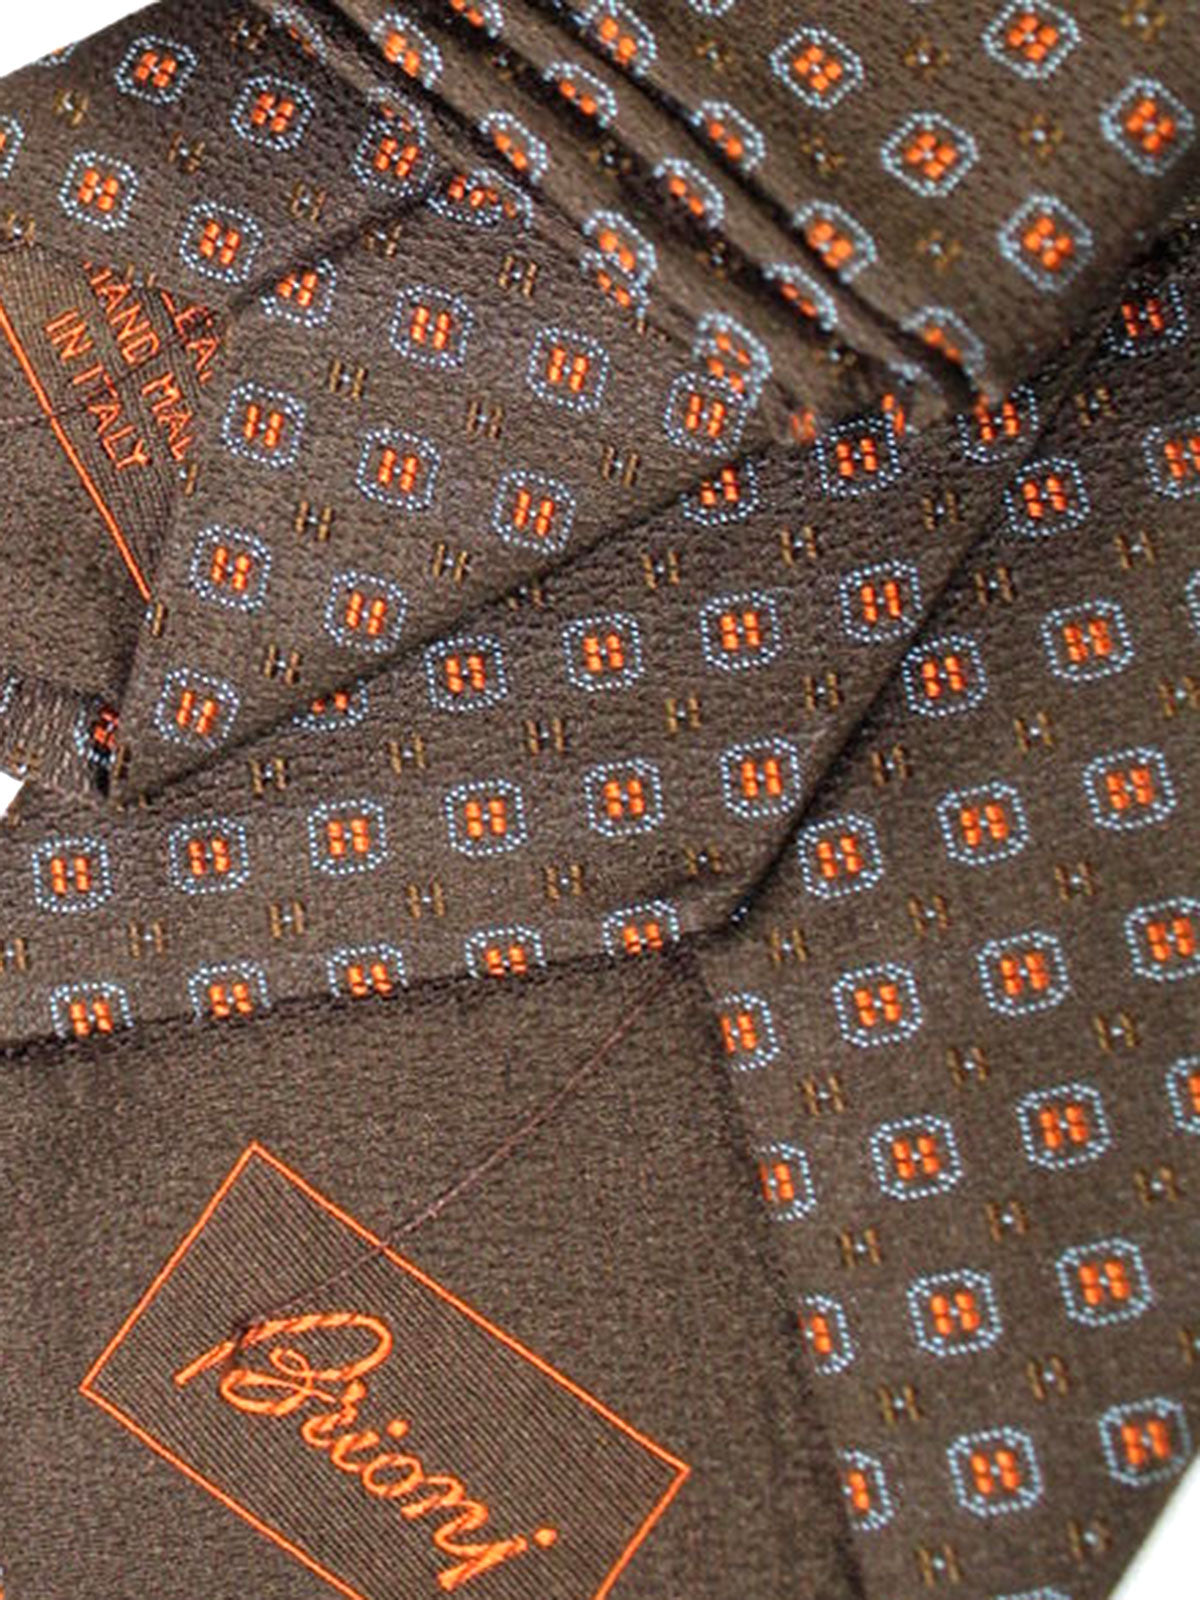 Brioni Tie & Matching Pocket Square Set Brown Orange Blue Geometric